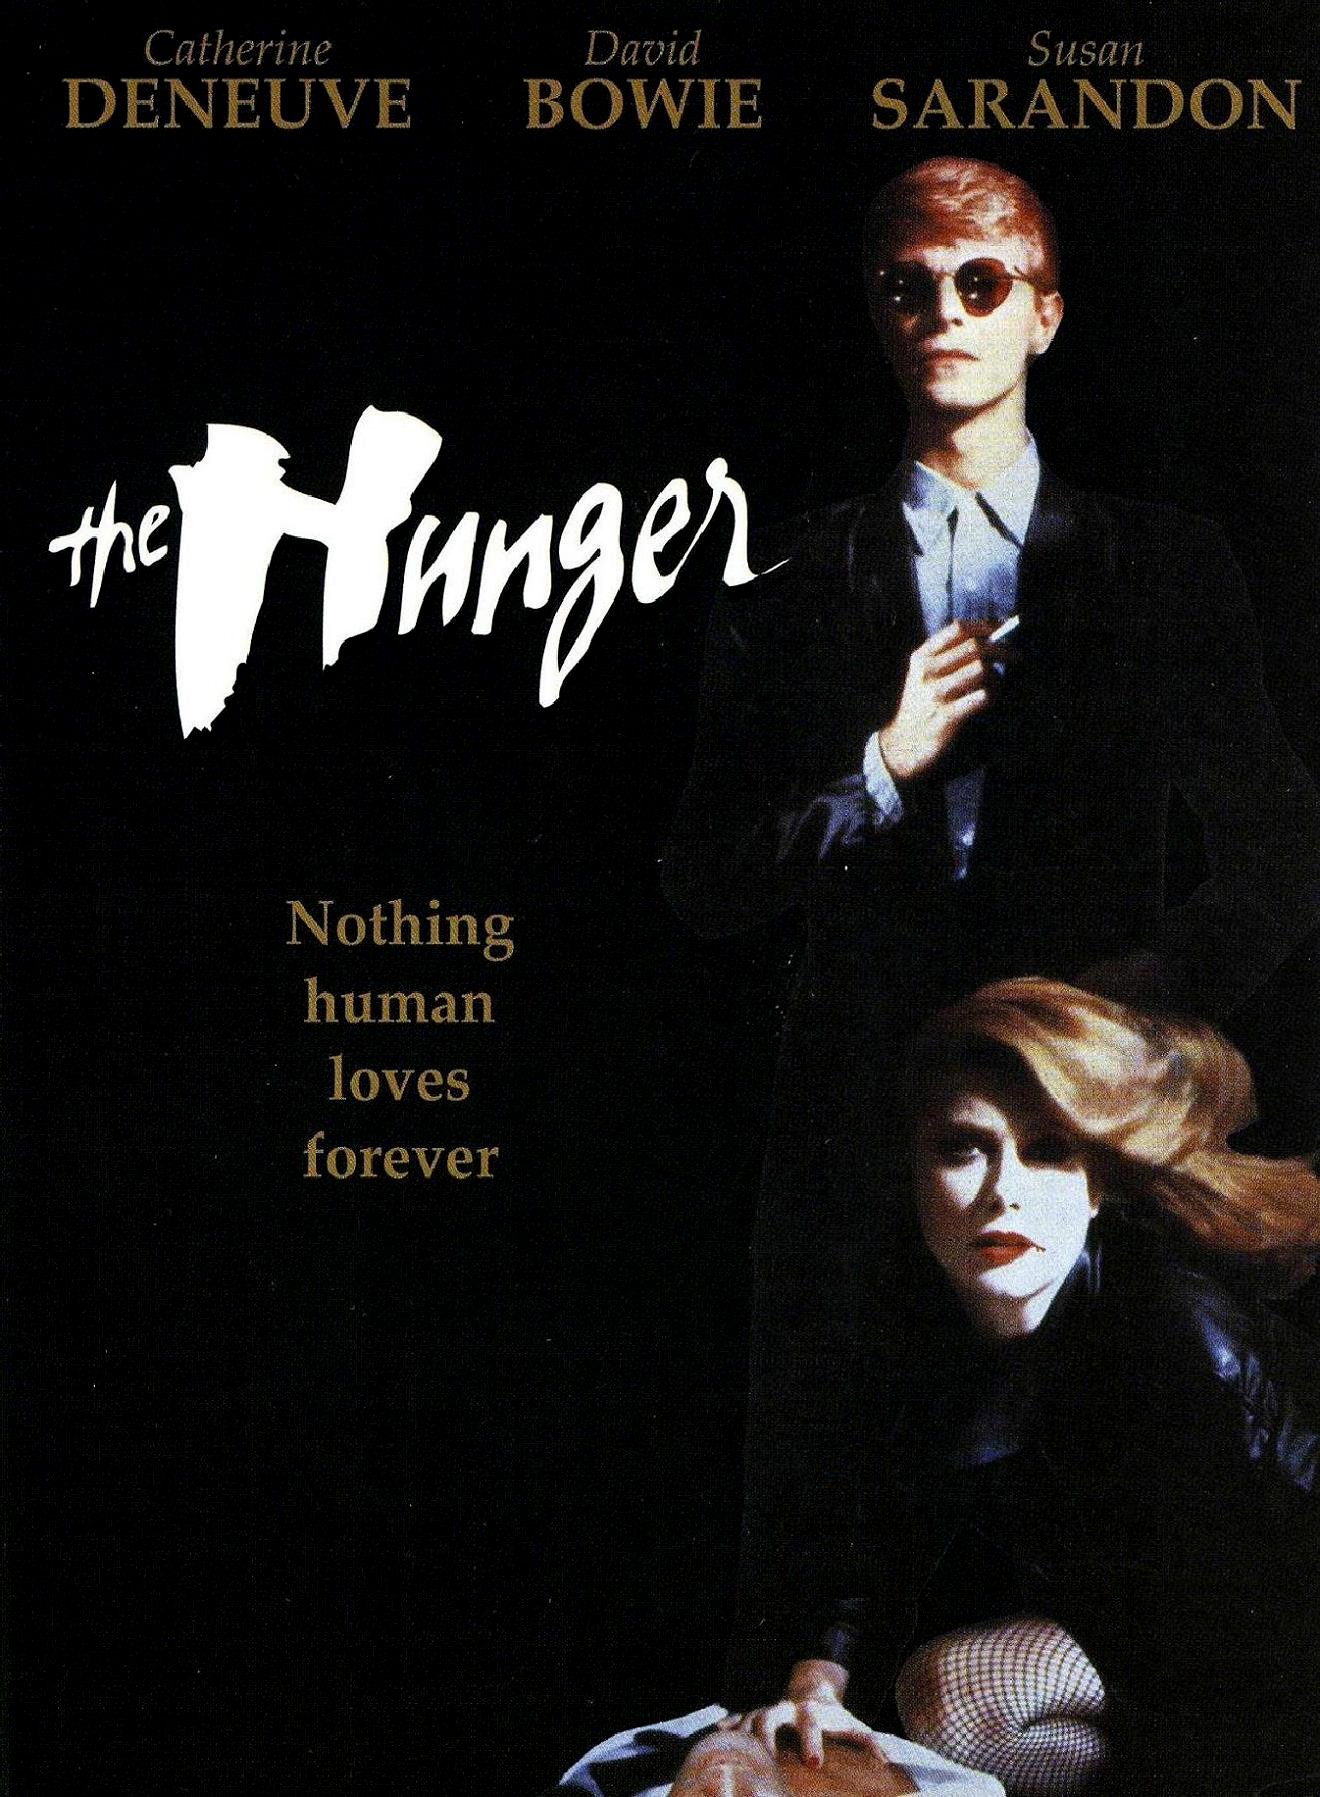 The Hunger! Sex, Blood, Bowie! New Music + Lusting For Vampires